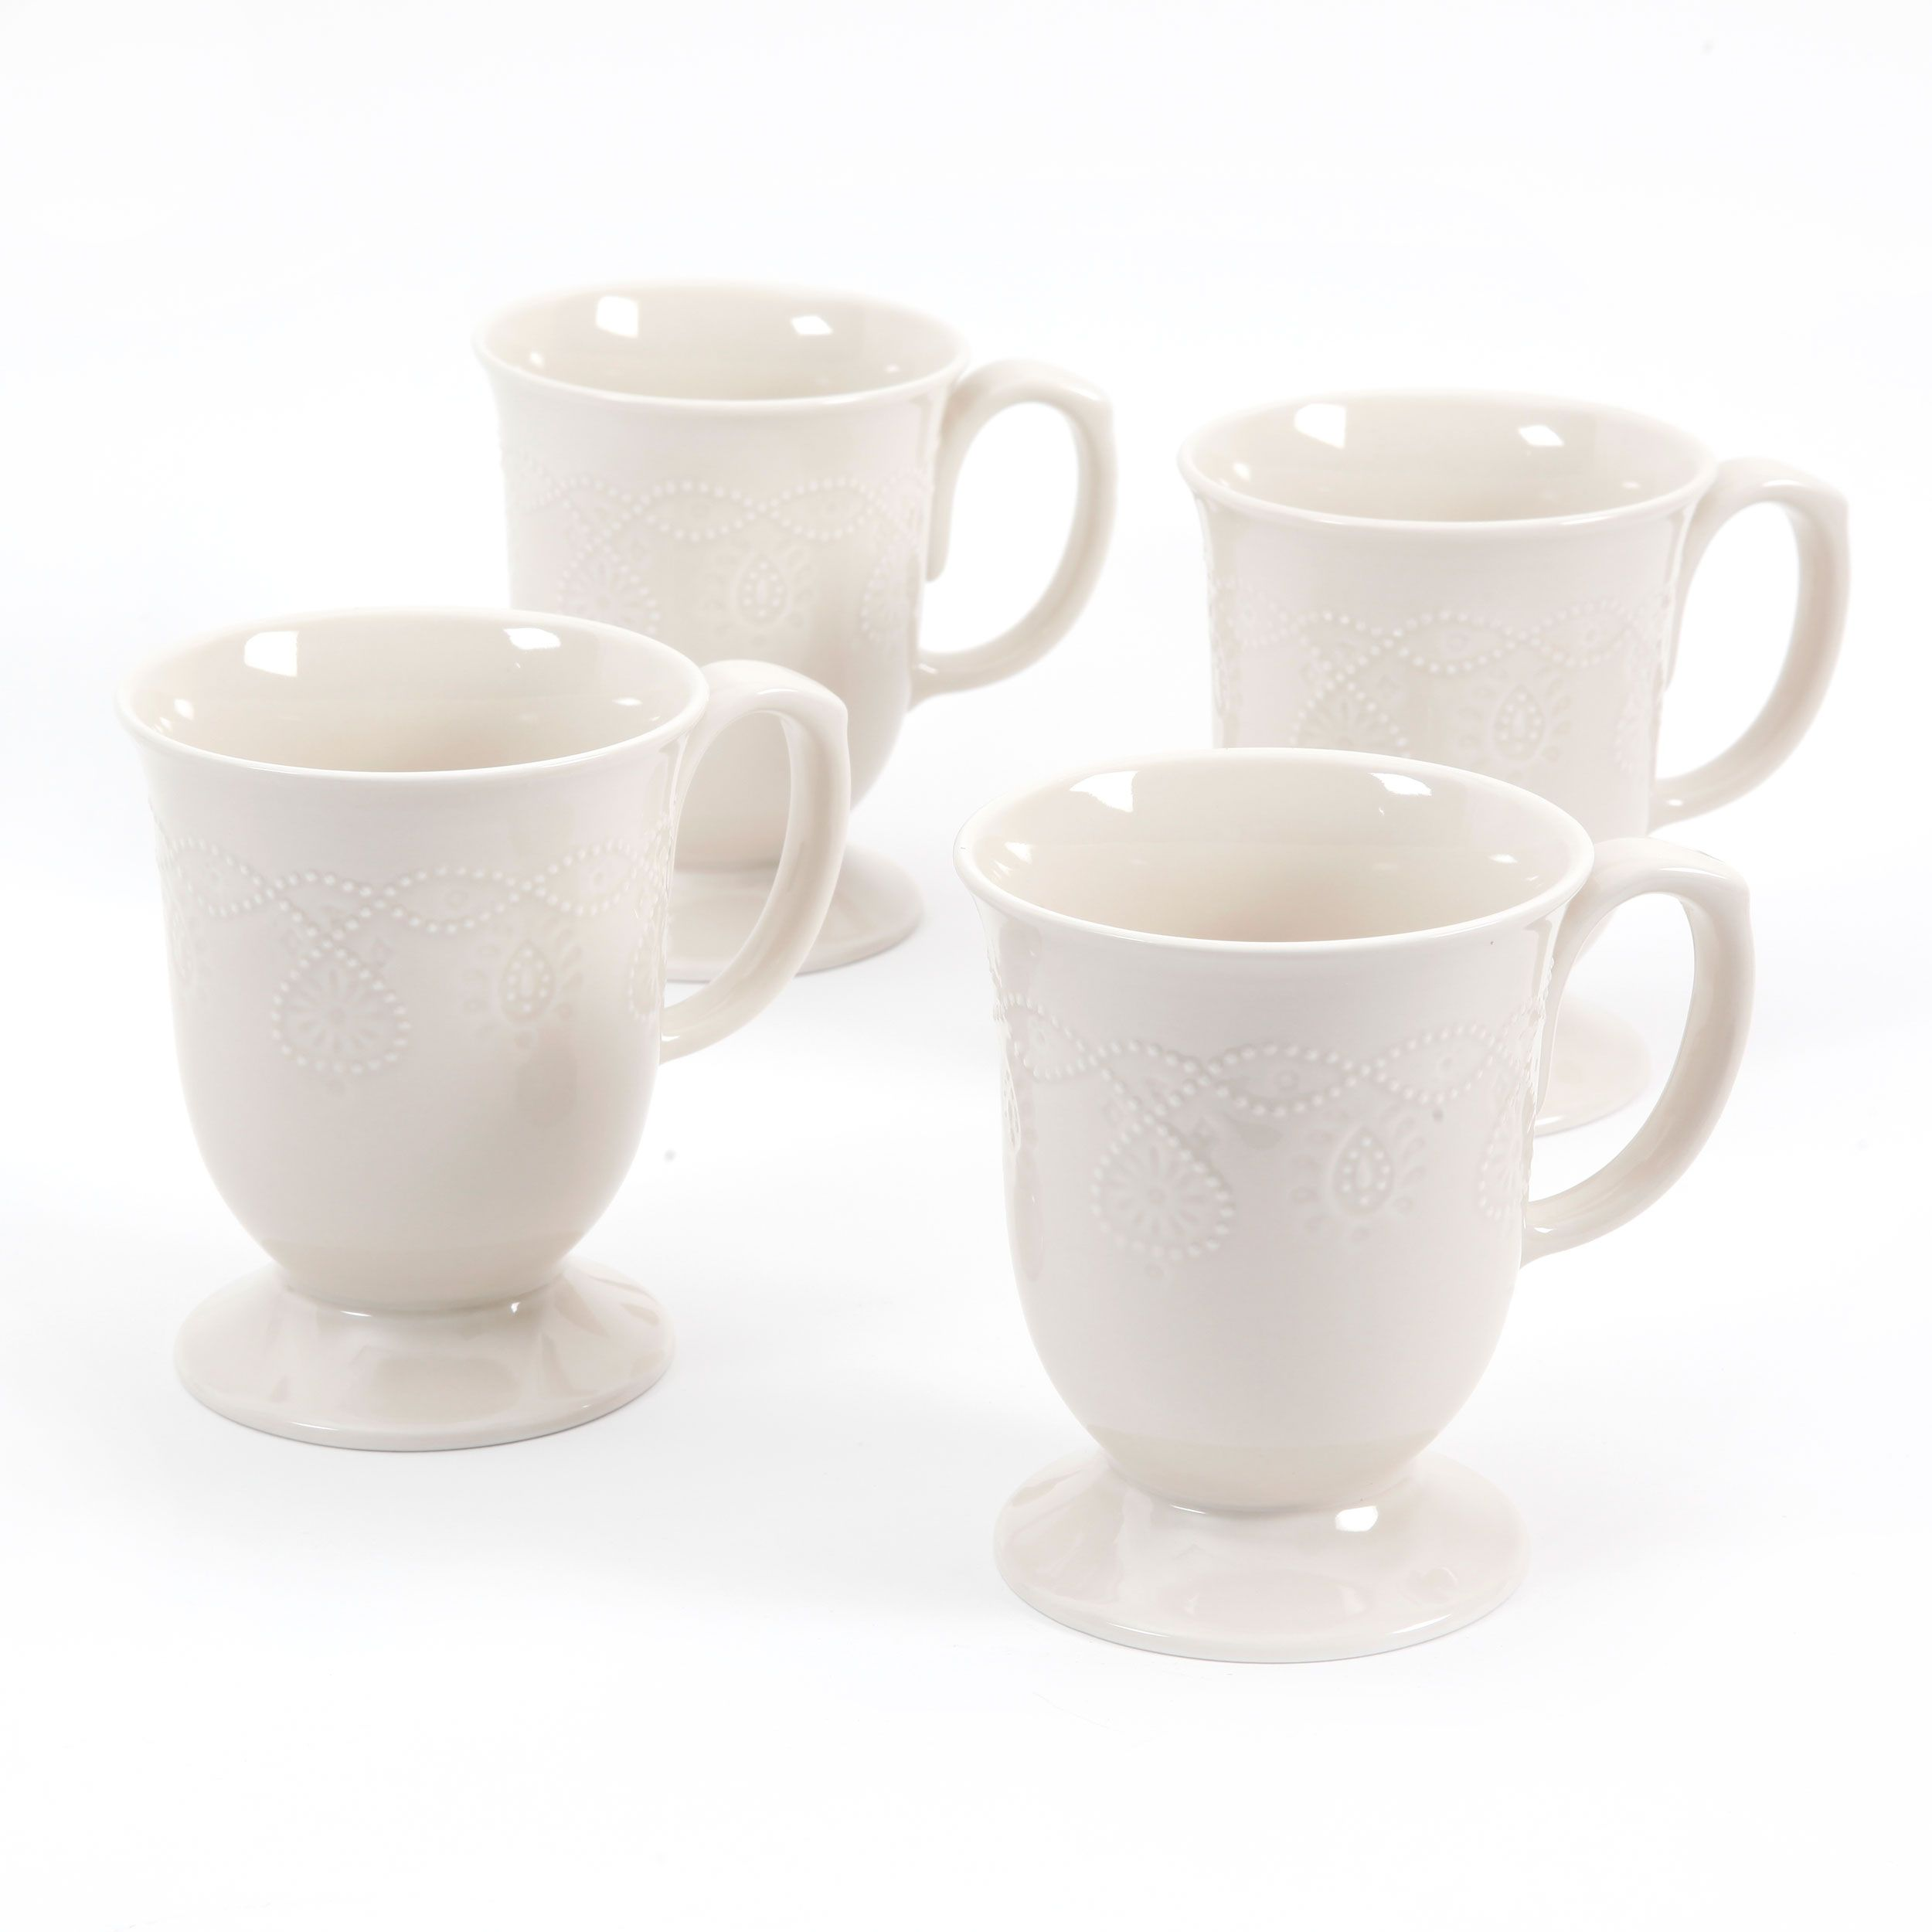 The Pioneer Woman Collection Mugs set, Mugs, Pioneer woman